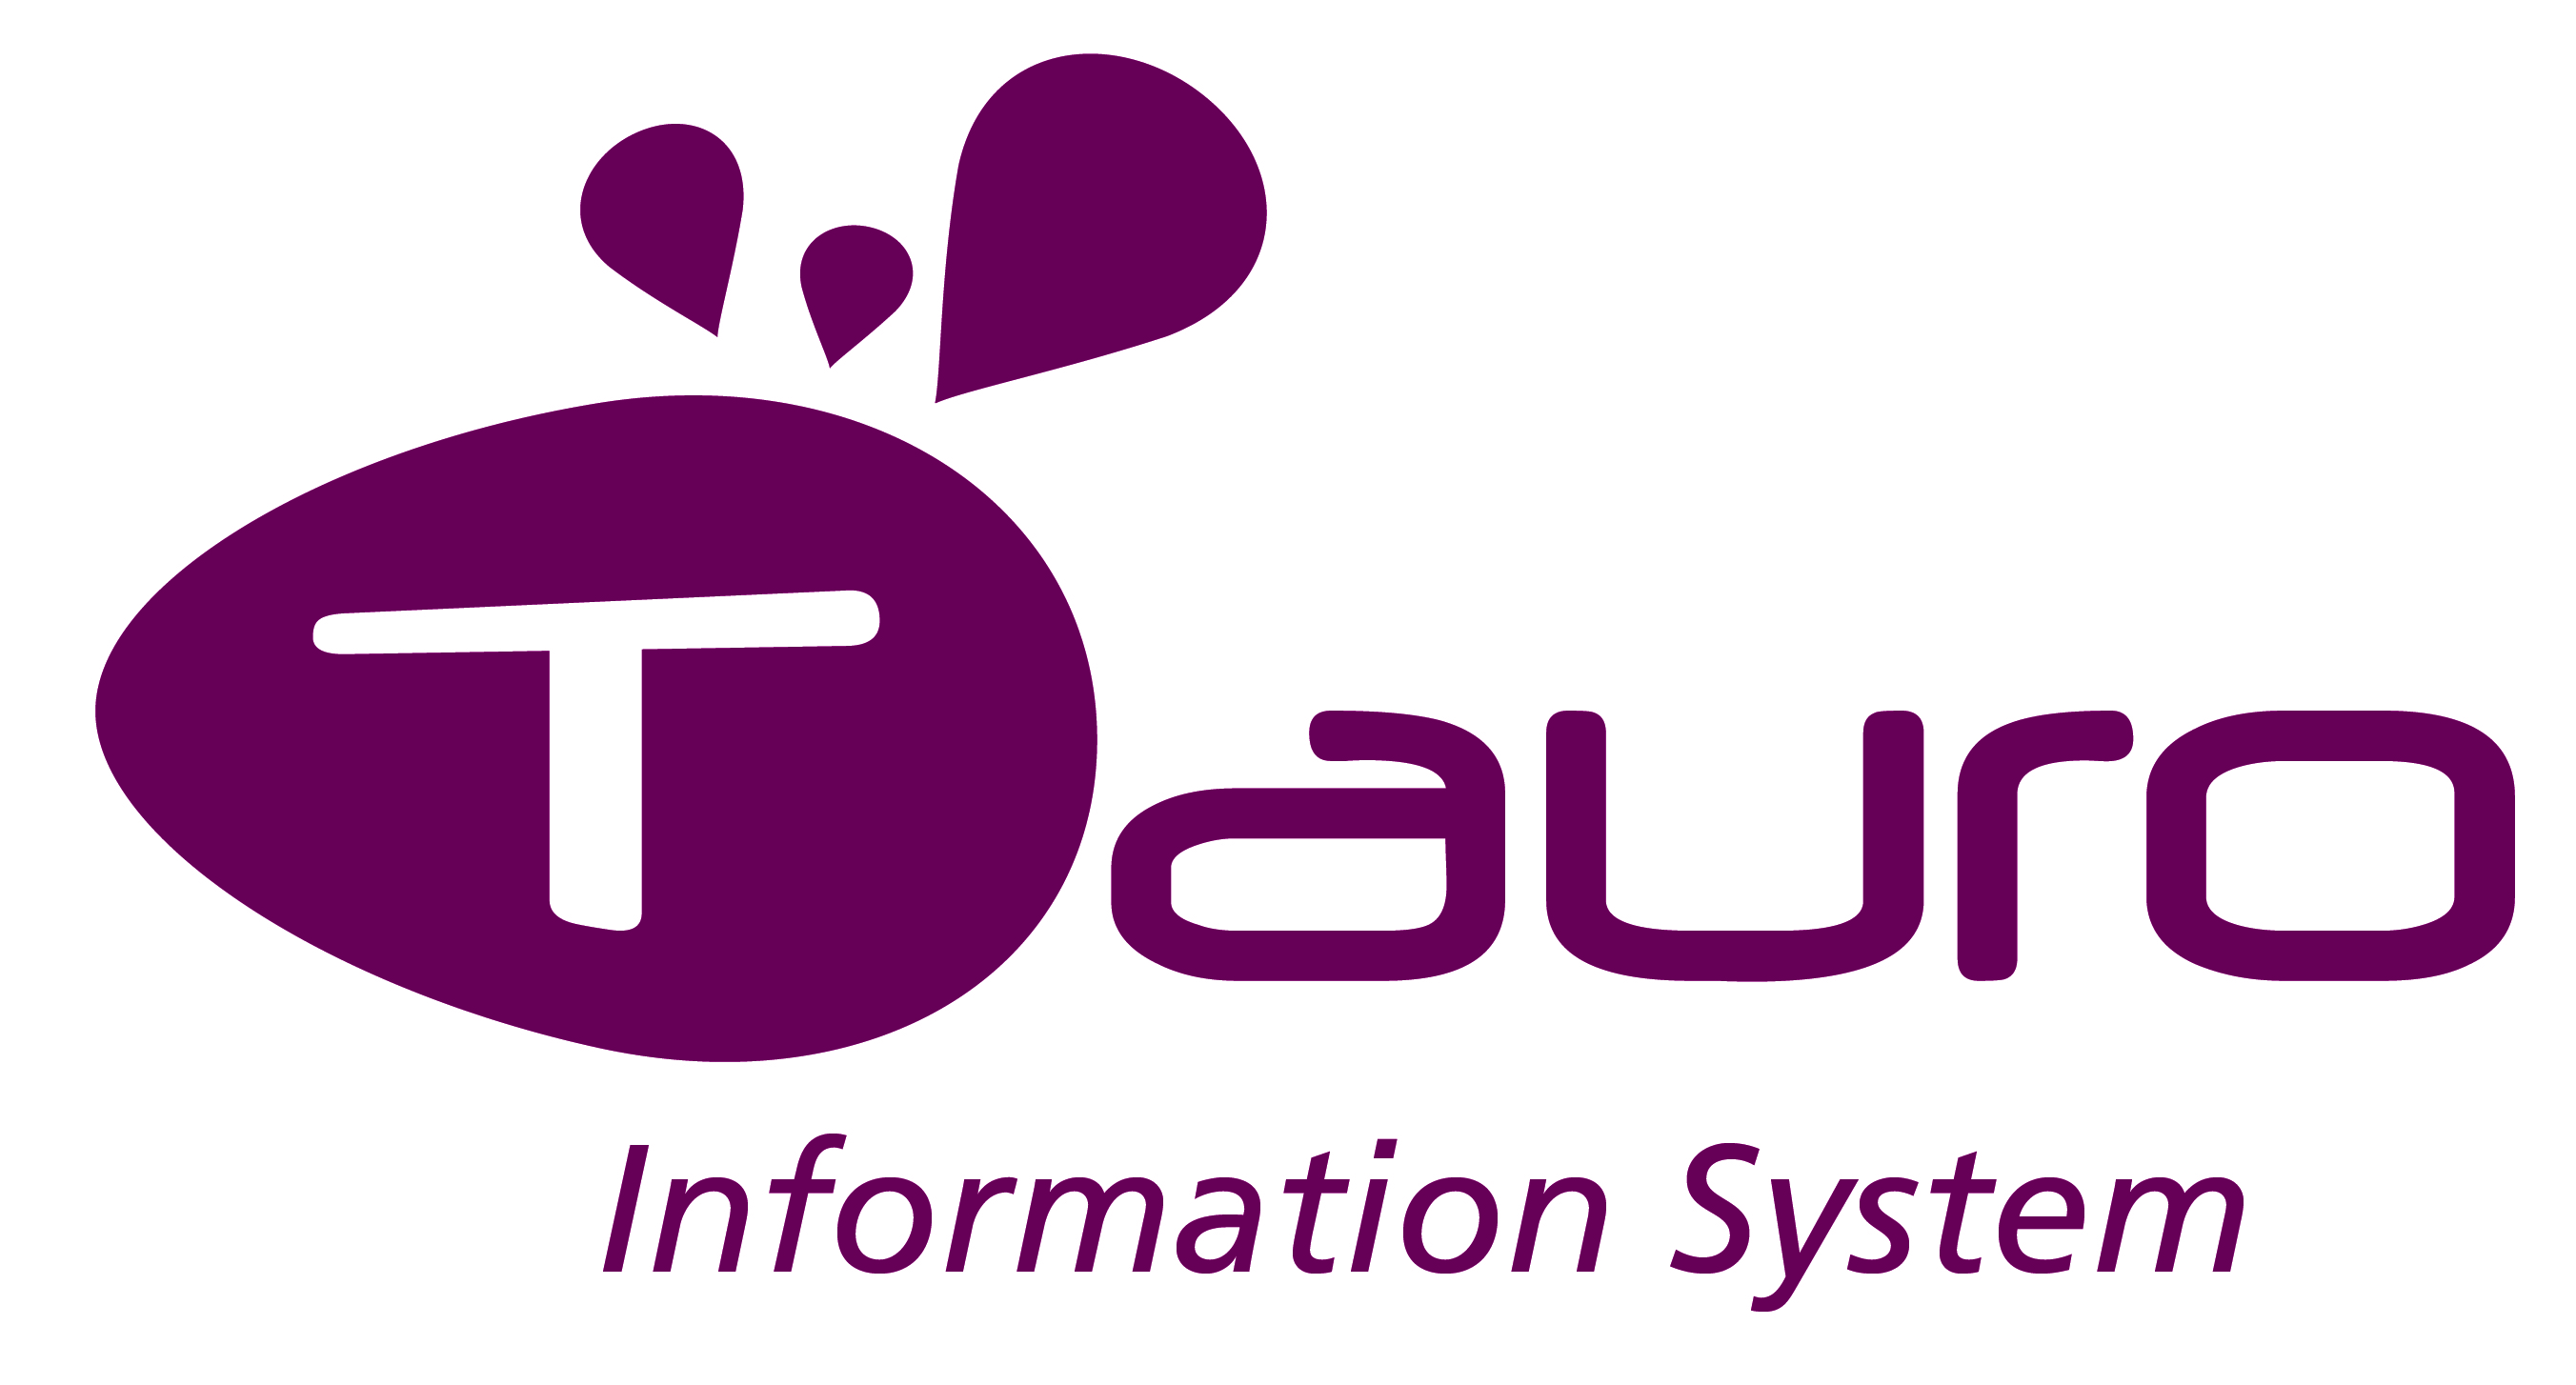 LOGO TAURO IS